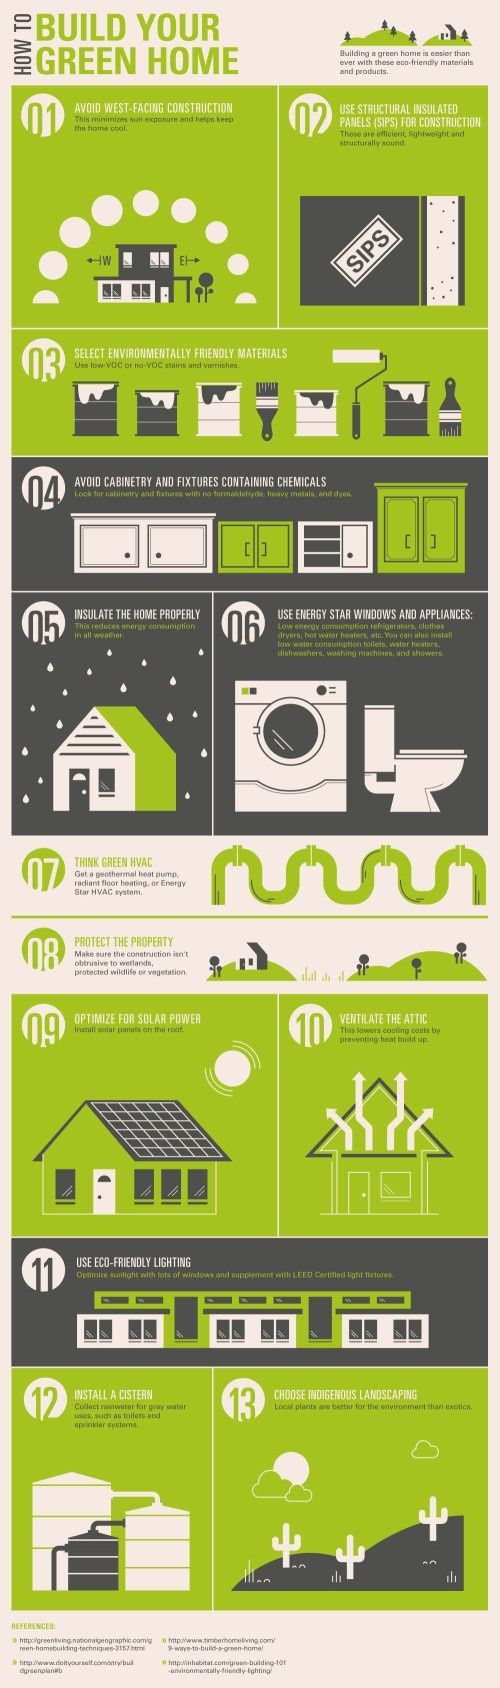 How to keep your bills down by making your home green! Great infographic for landlords & homeowners!